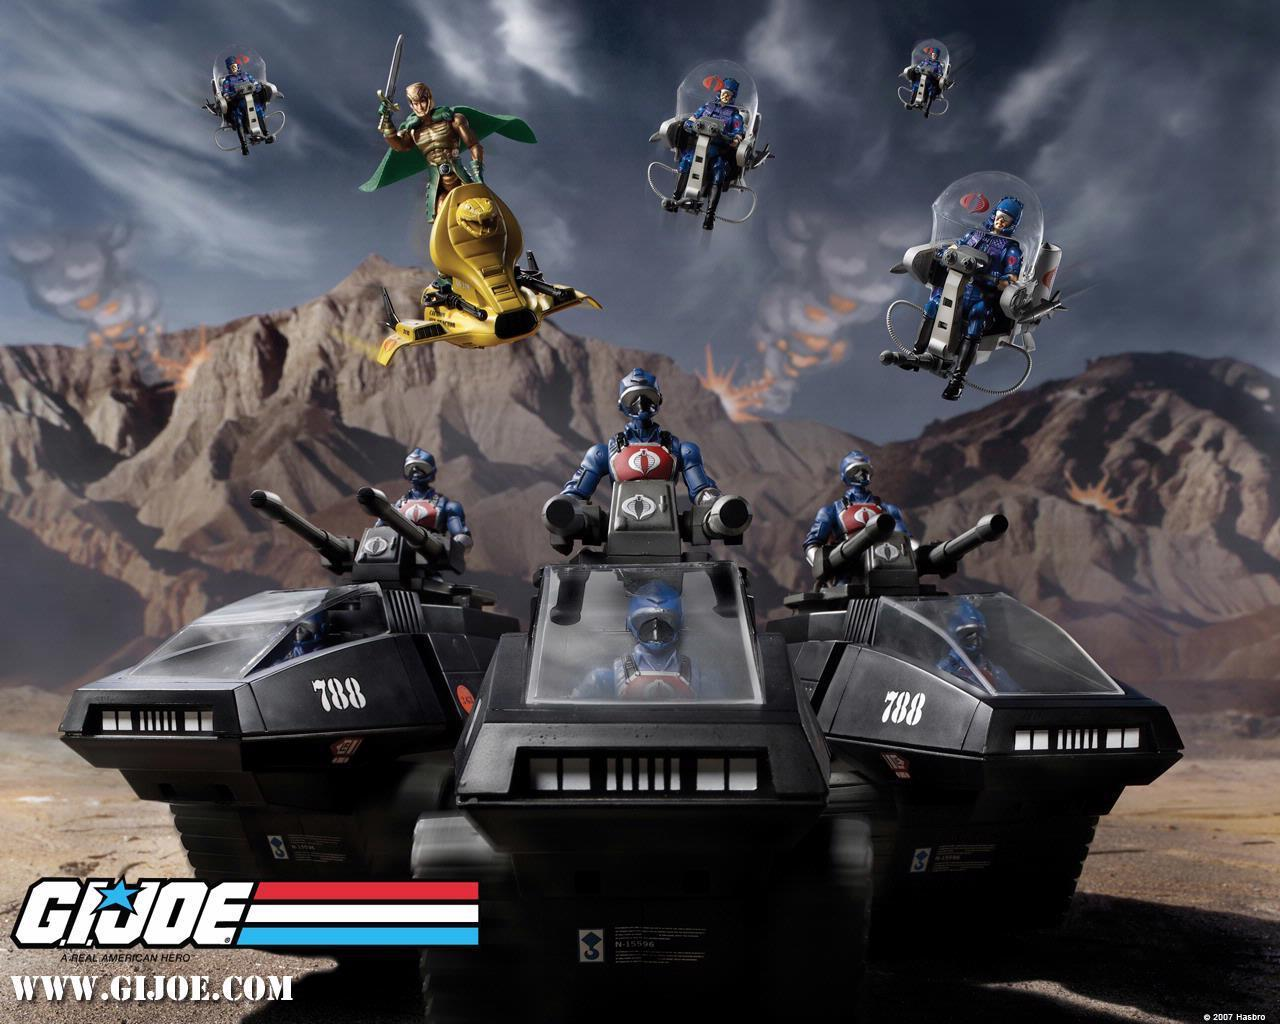 Gi Joe Cobra Wallpaper Images amp Pictures   Becuo 1280x1024